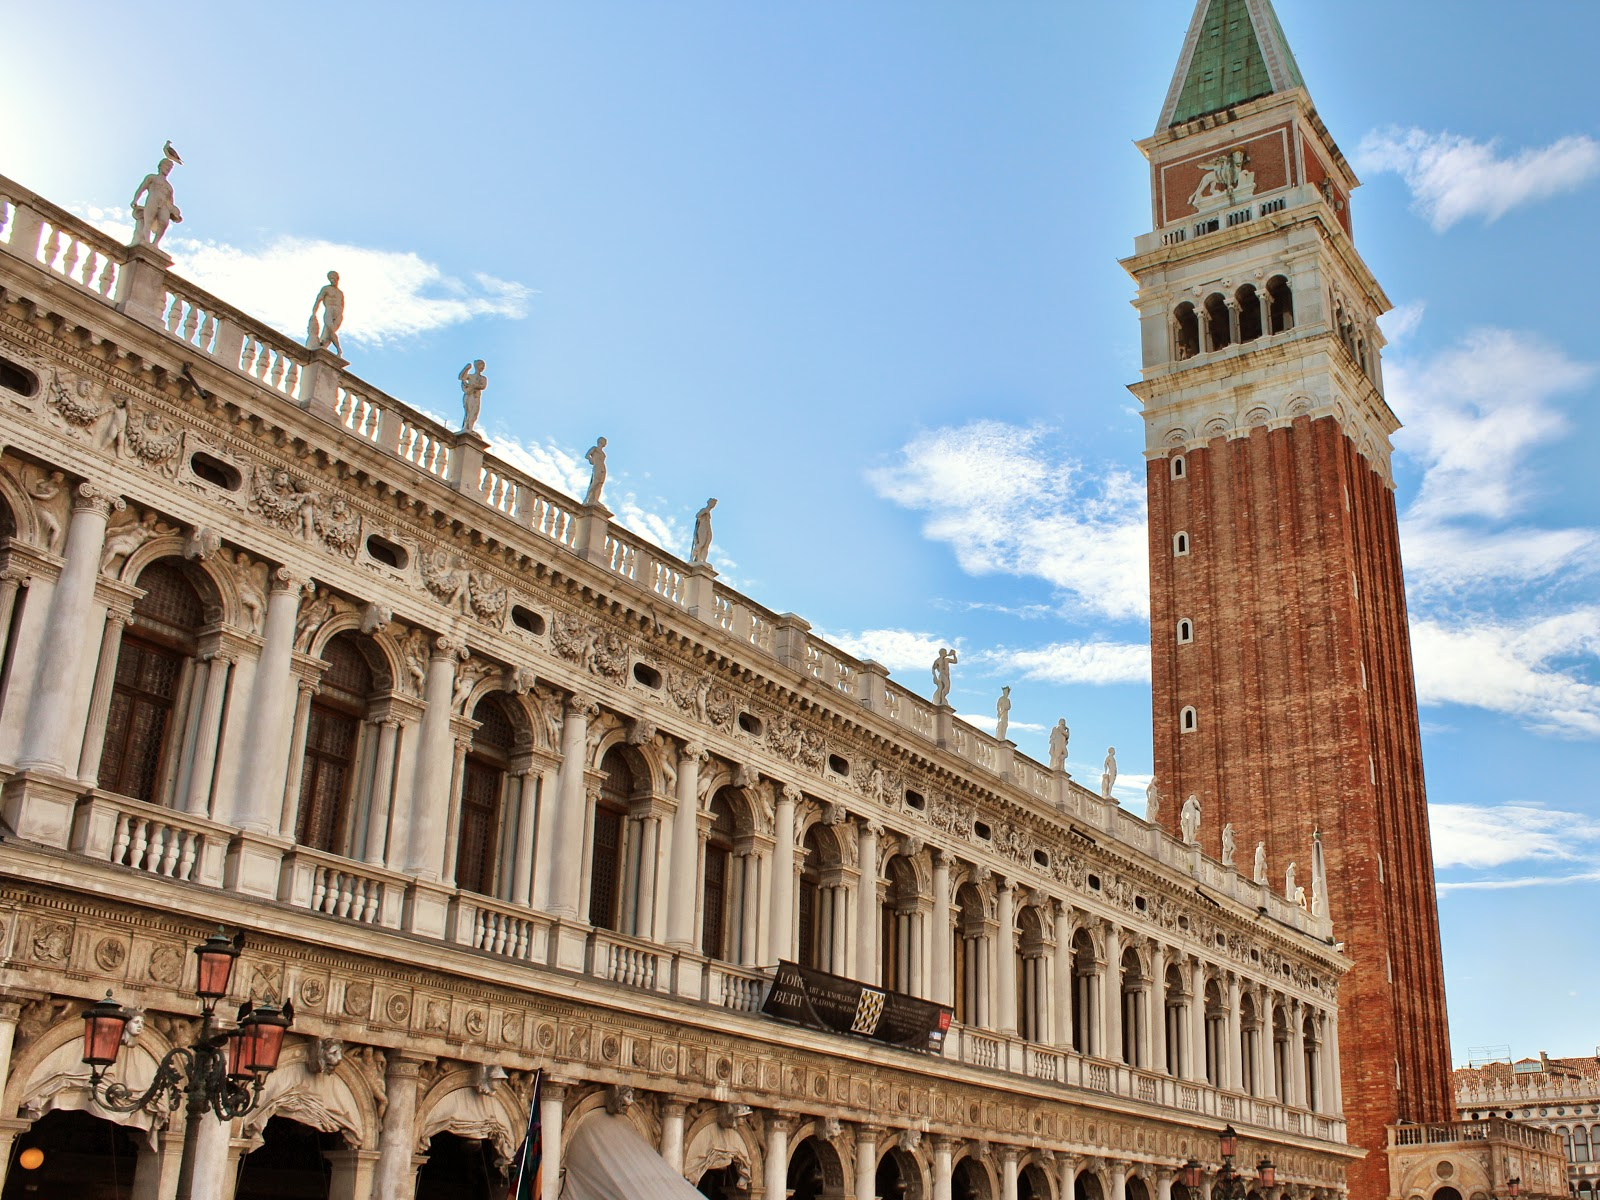 San Marco Campanile (Bell Tower) in Venice